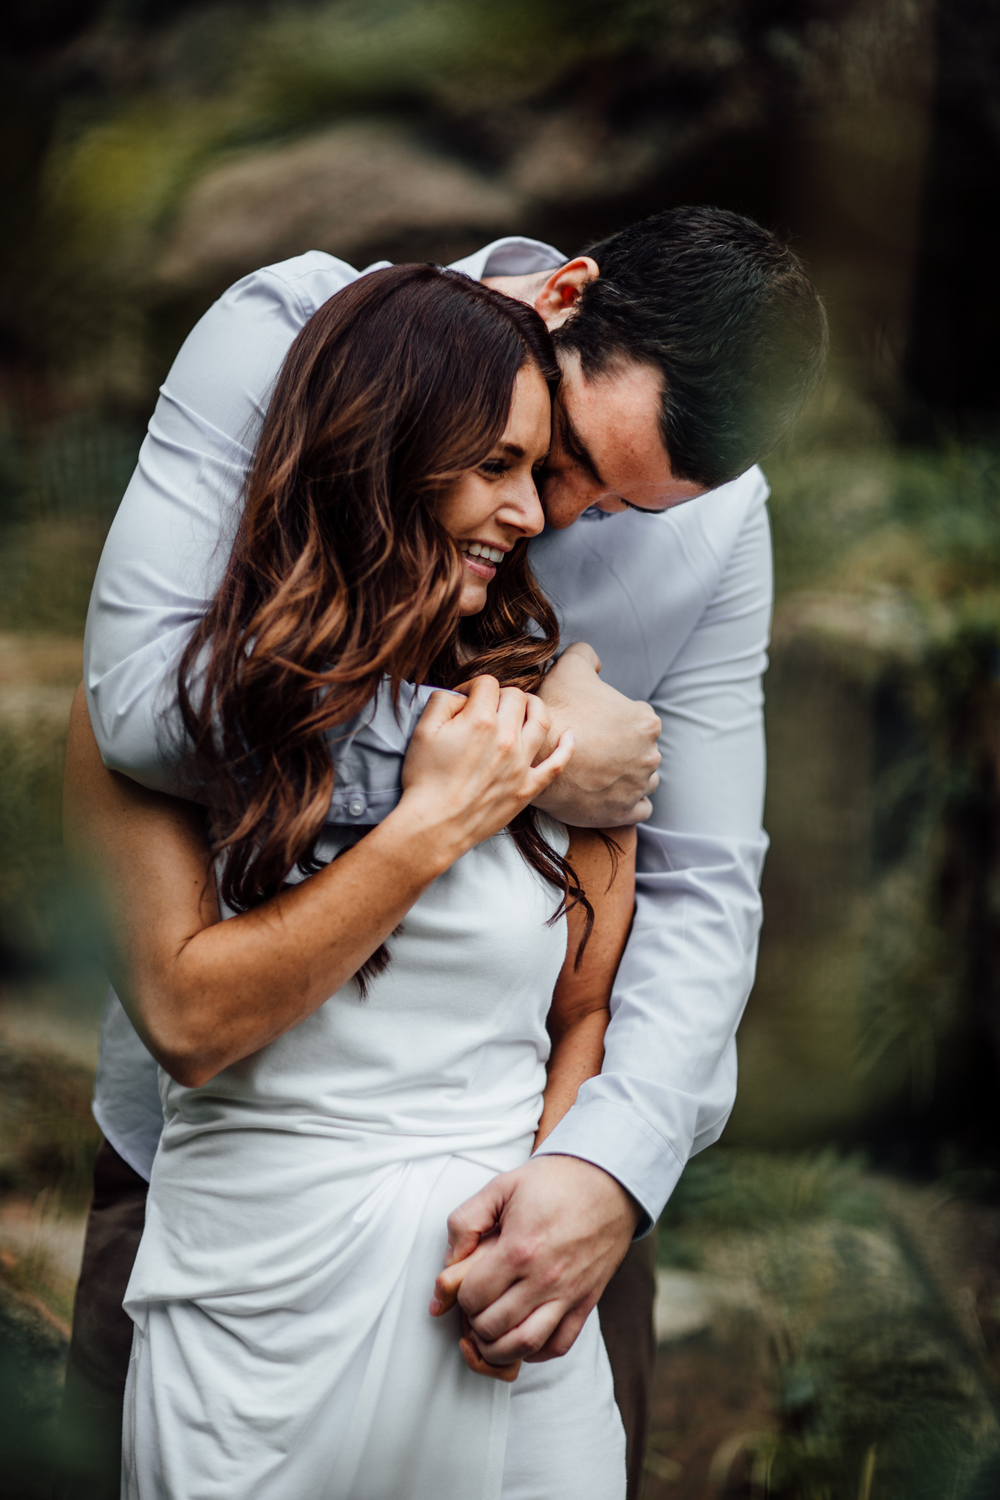 BRITTANYandKEVIN-Engagement2015 (9 of 115).jpg